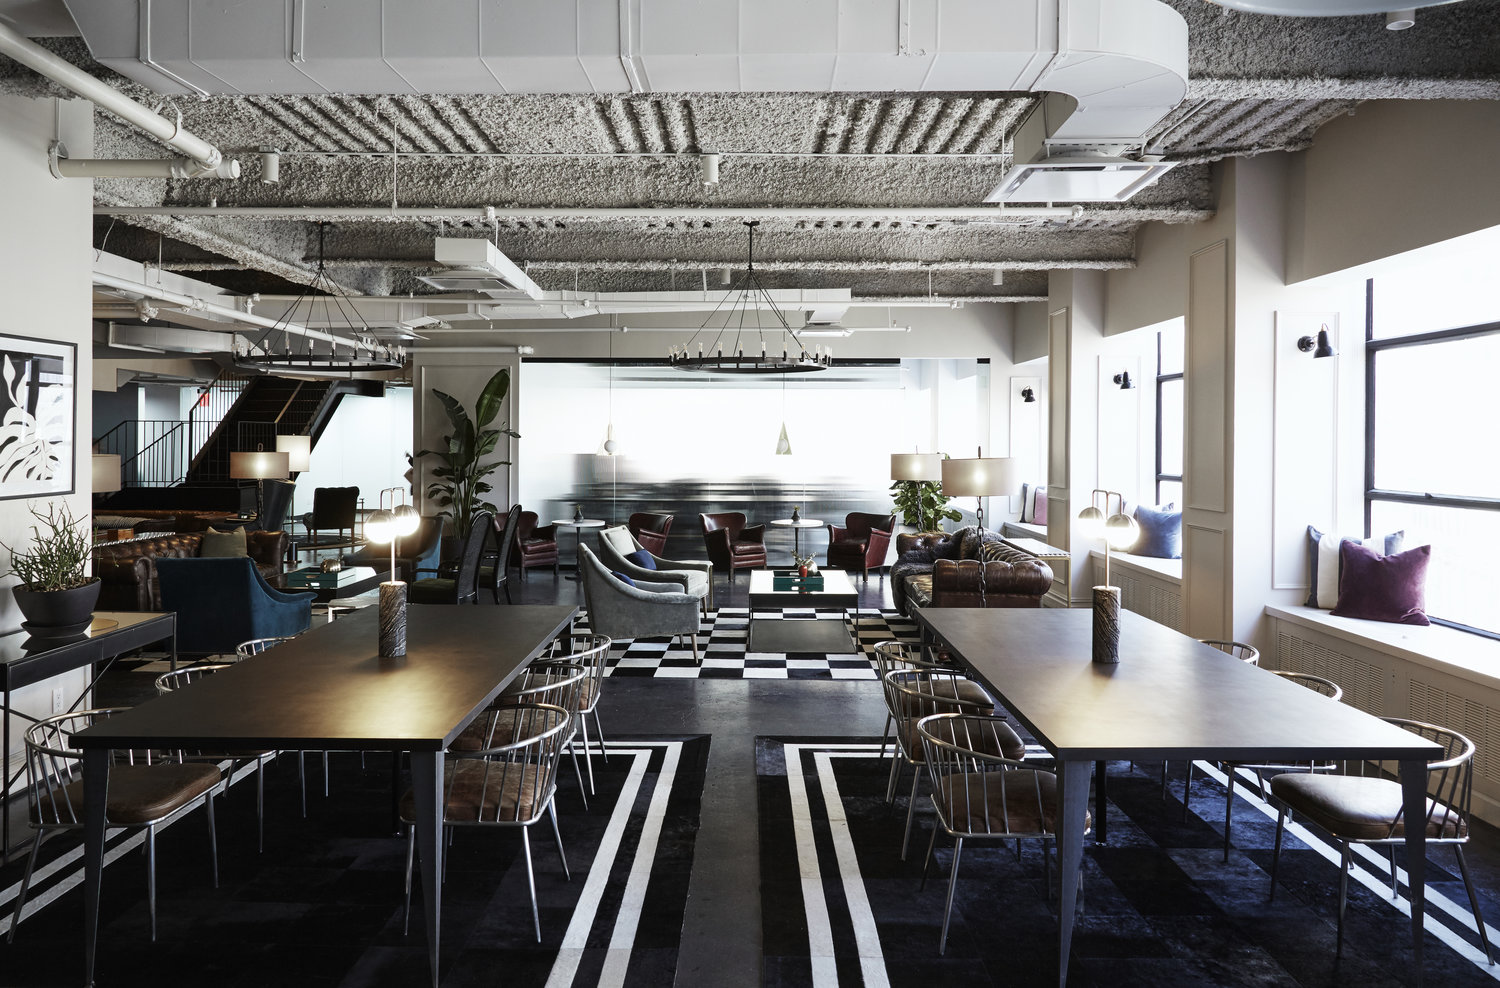 Coworking space with tables in industrial room